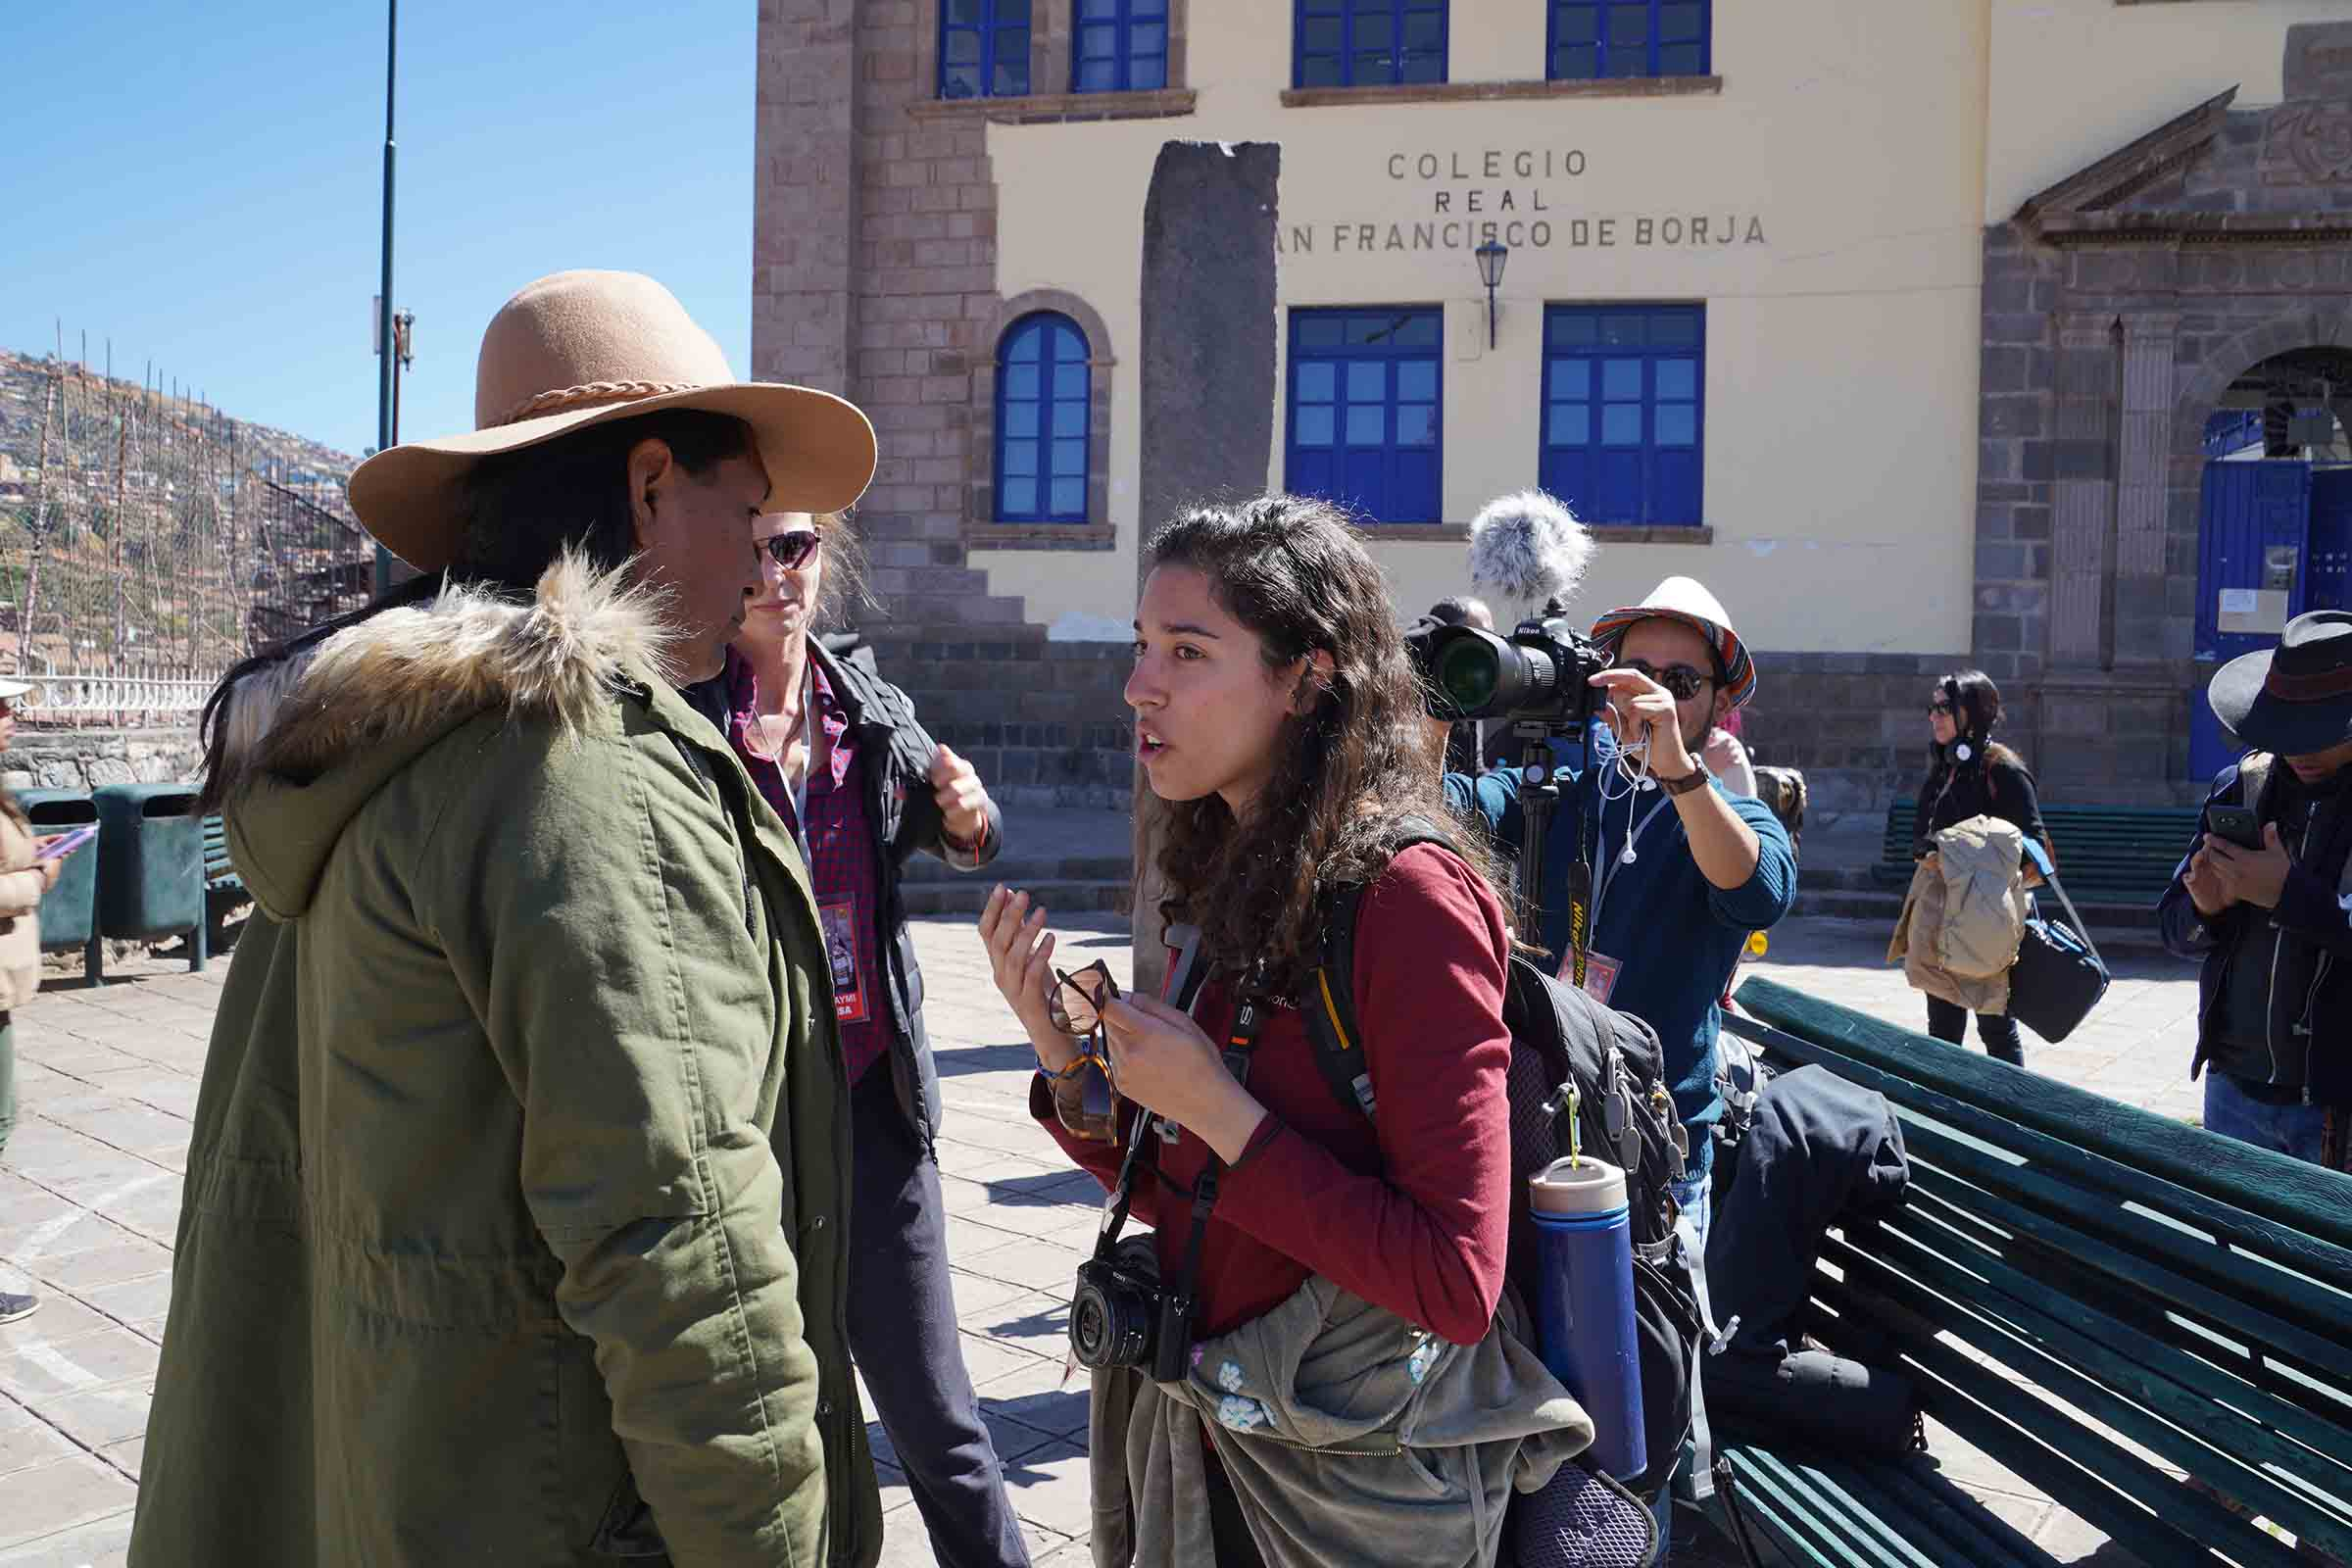 jimmy-nelson-foundation-peru-quechua-behind-the-scenes-gallery-20